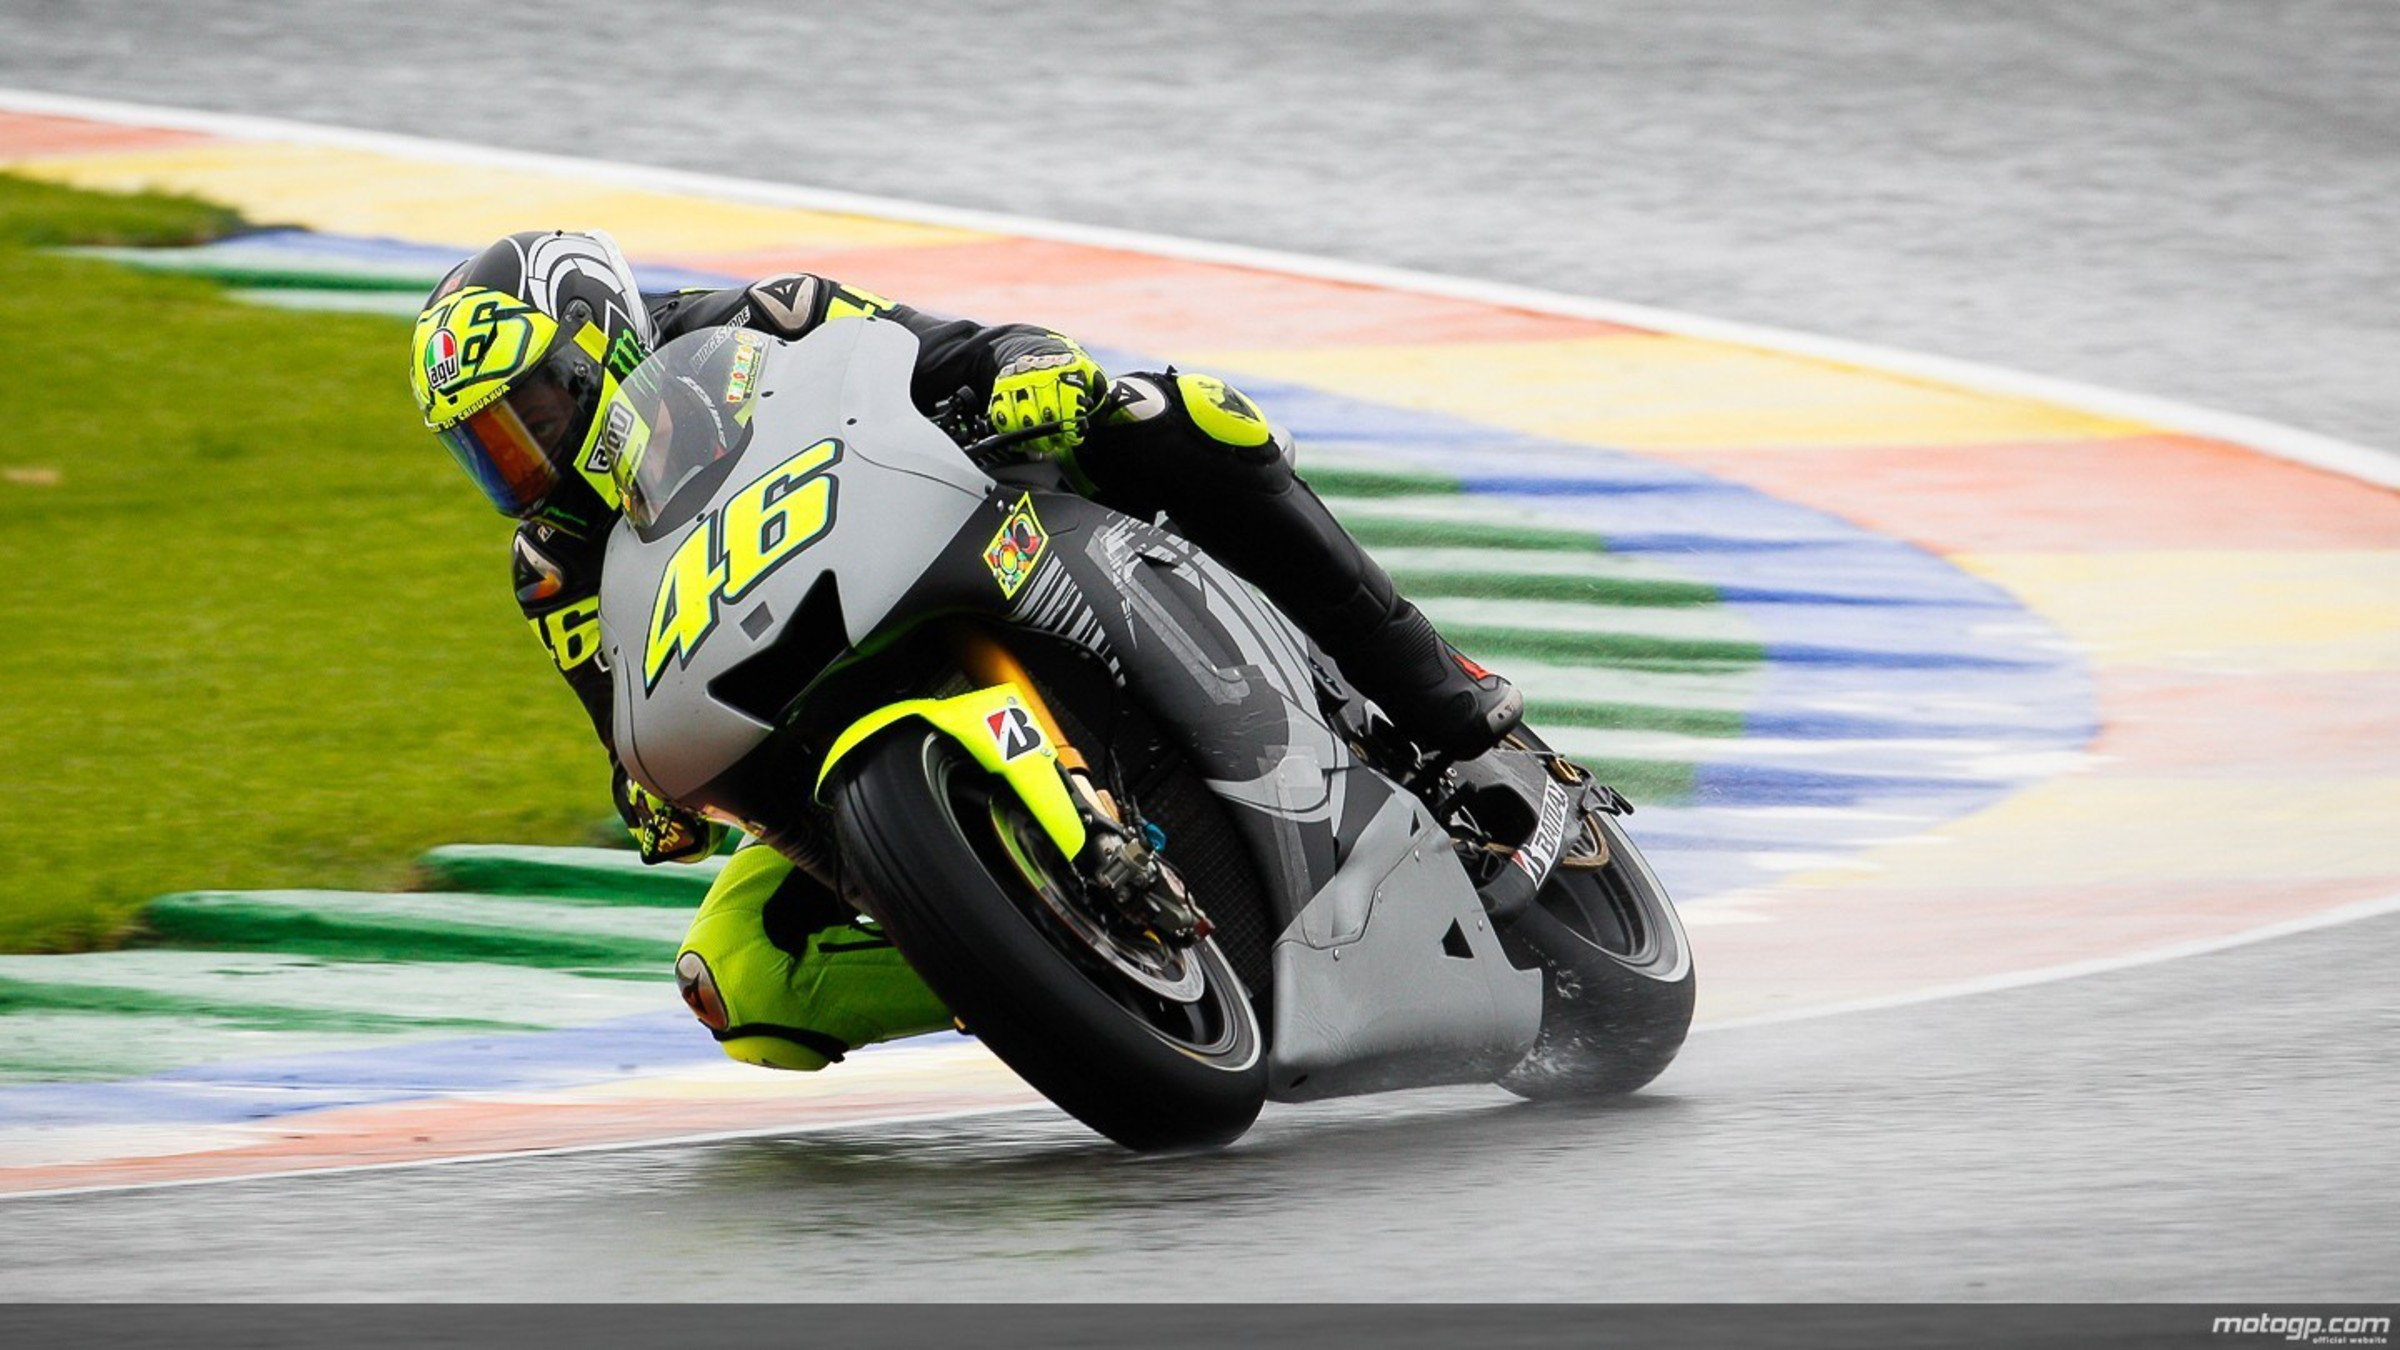 Moto gp valentino rossi yamaha m1 the doctor wallpaper wallpaper resolutions voltagebd Image collections